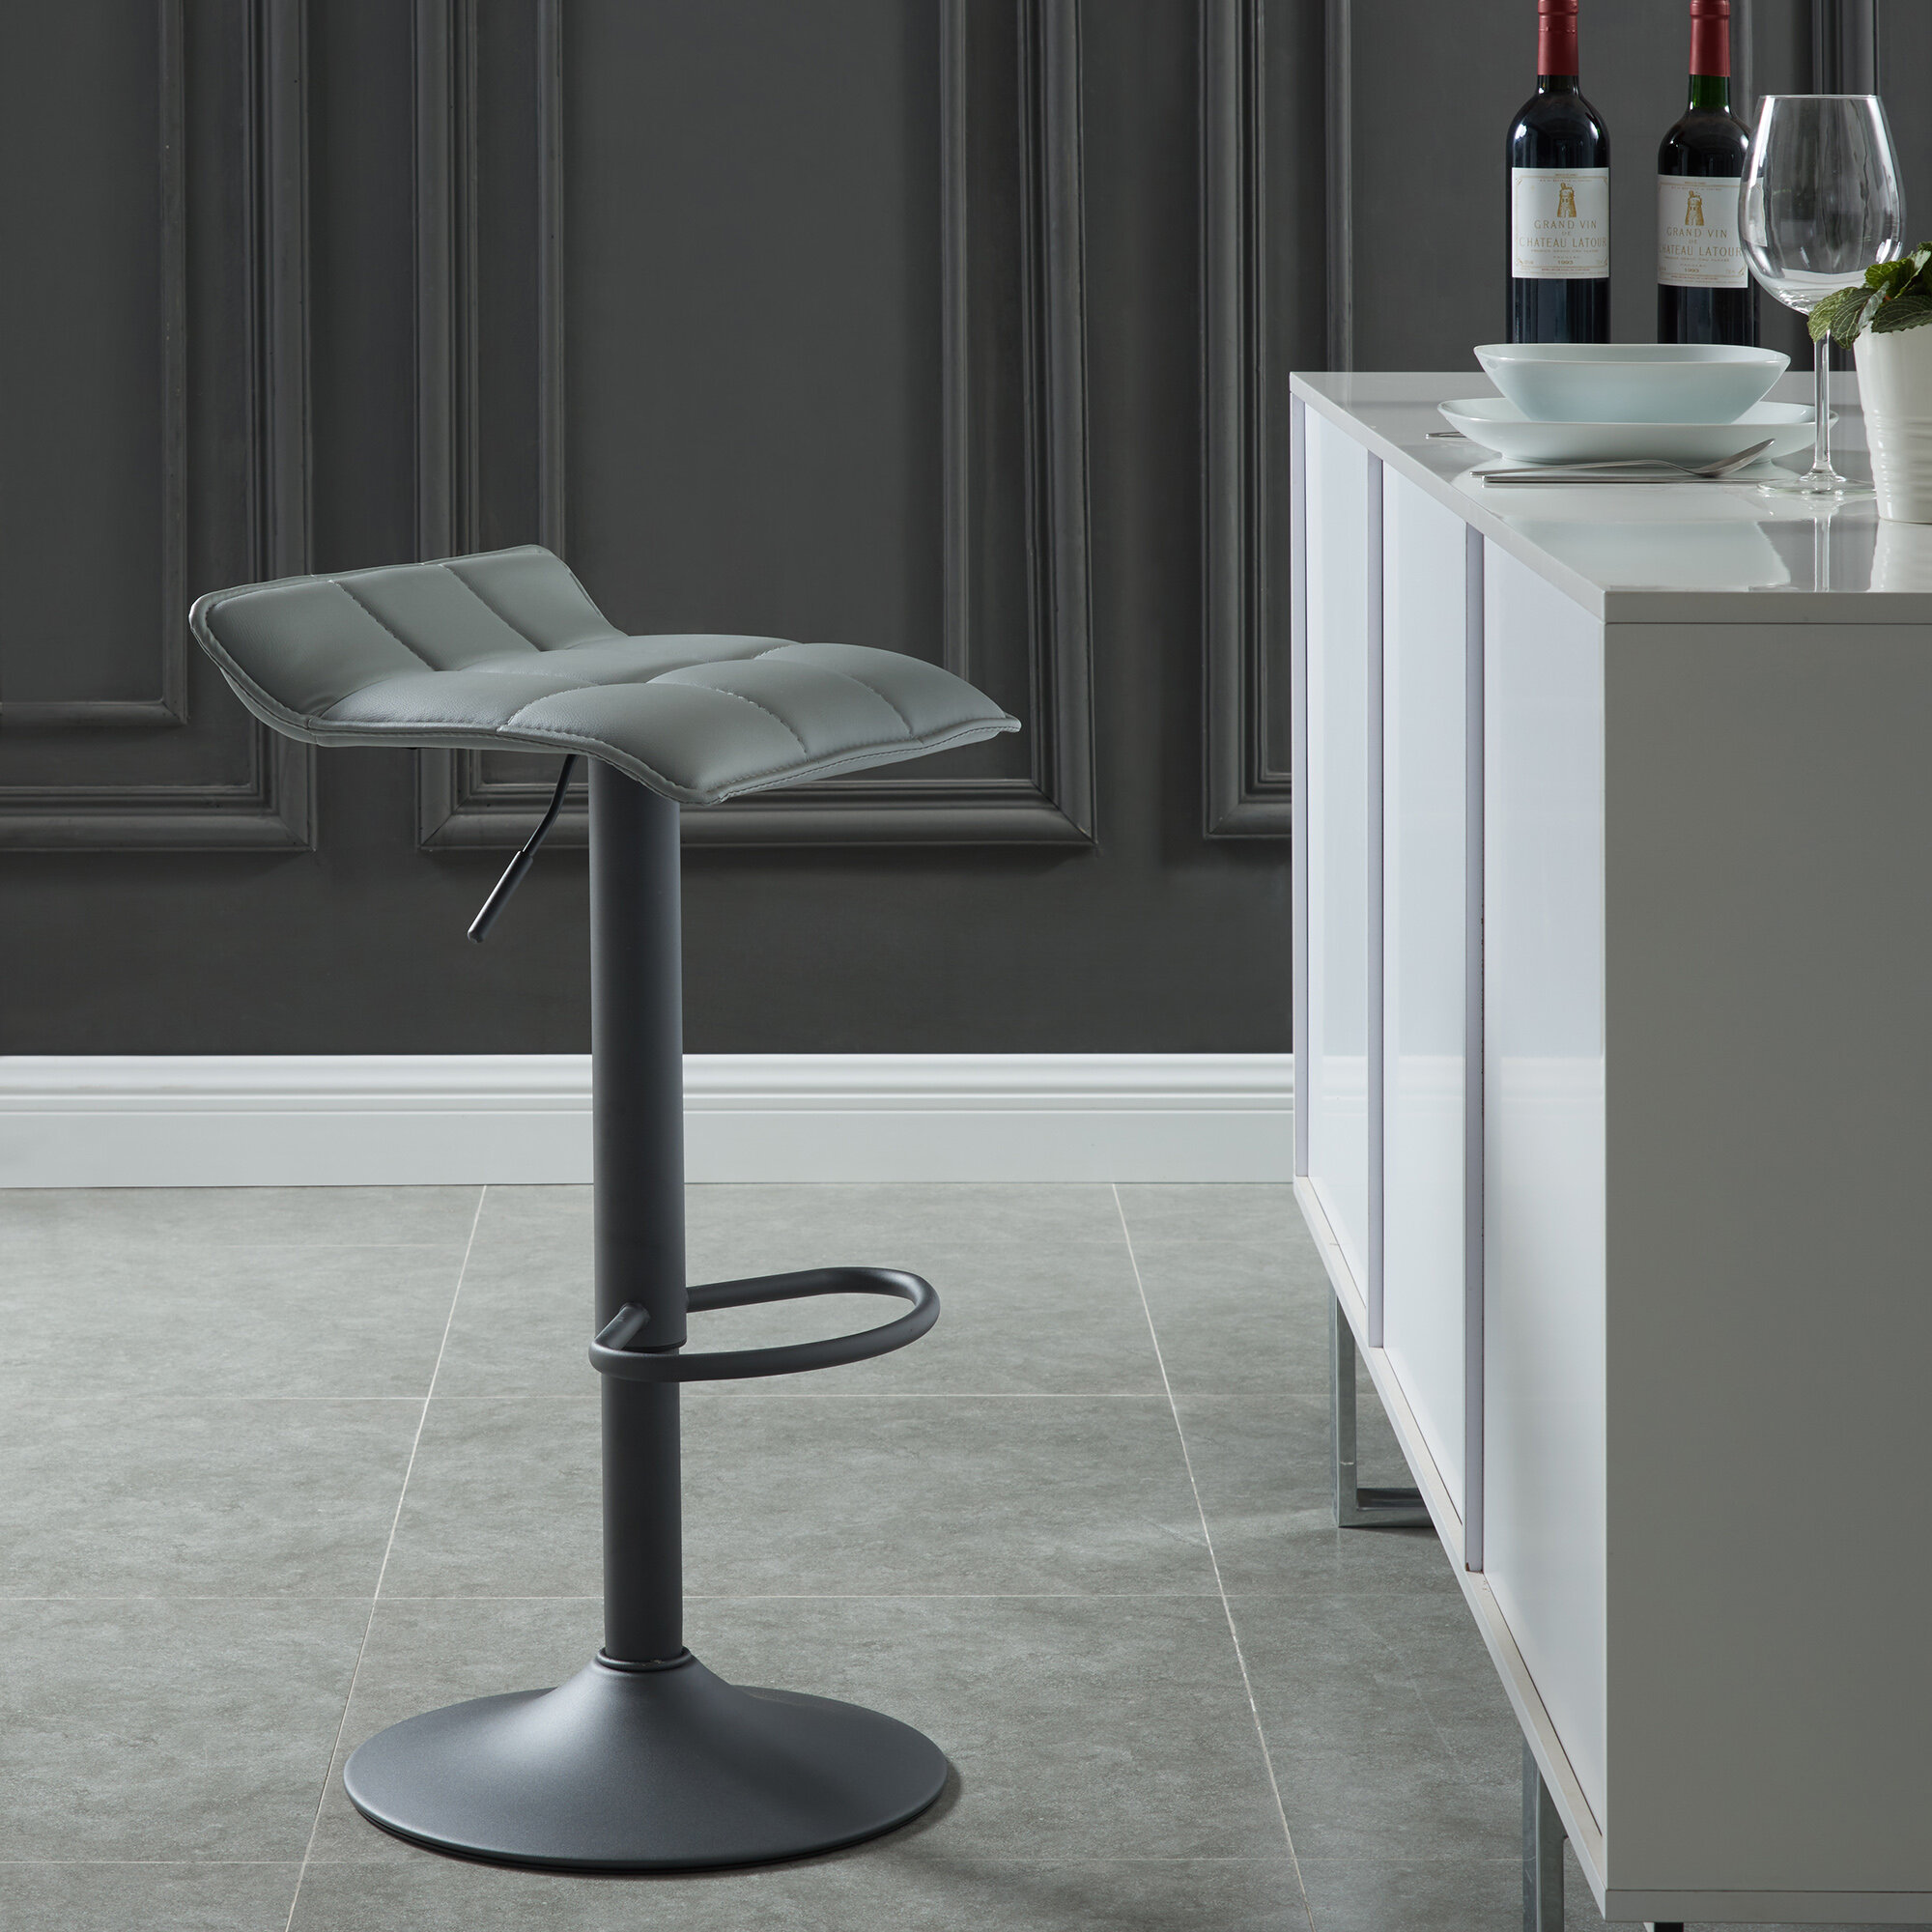 Fantastic Arjun Adjustable Height Swivel Bar Stool Caraccident5 Cool Chair Designs And Ideas Caraccident5Info